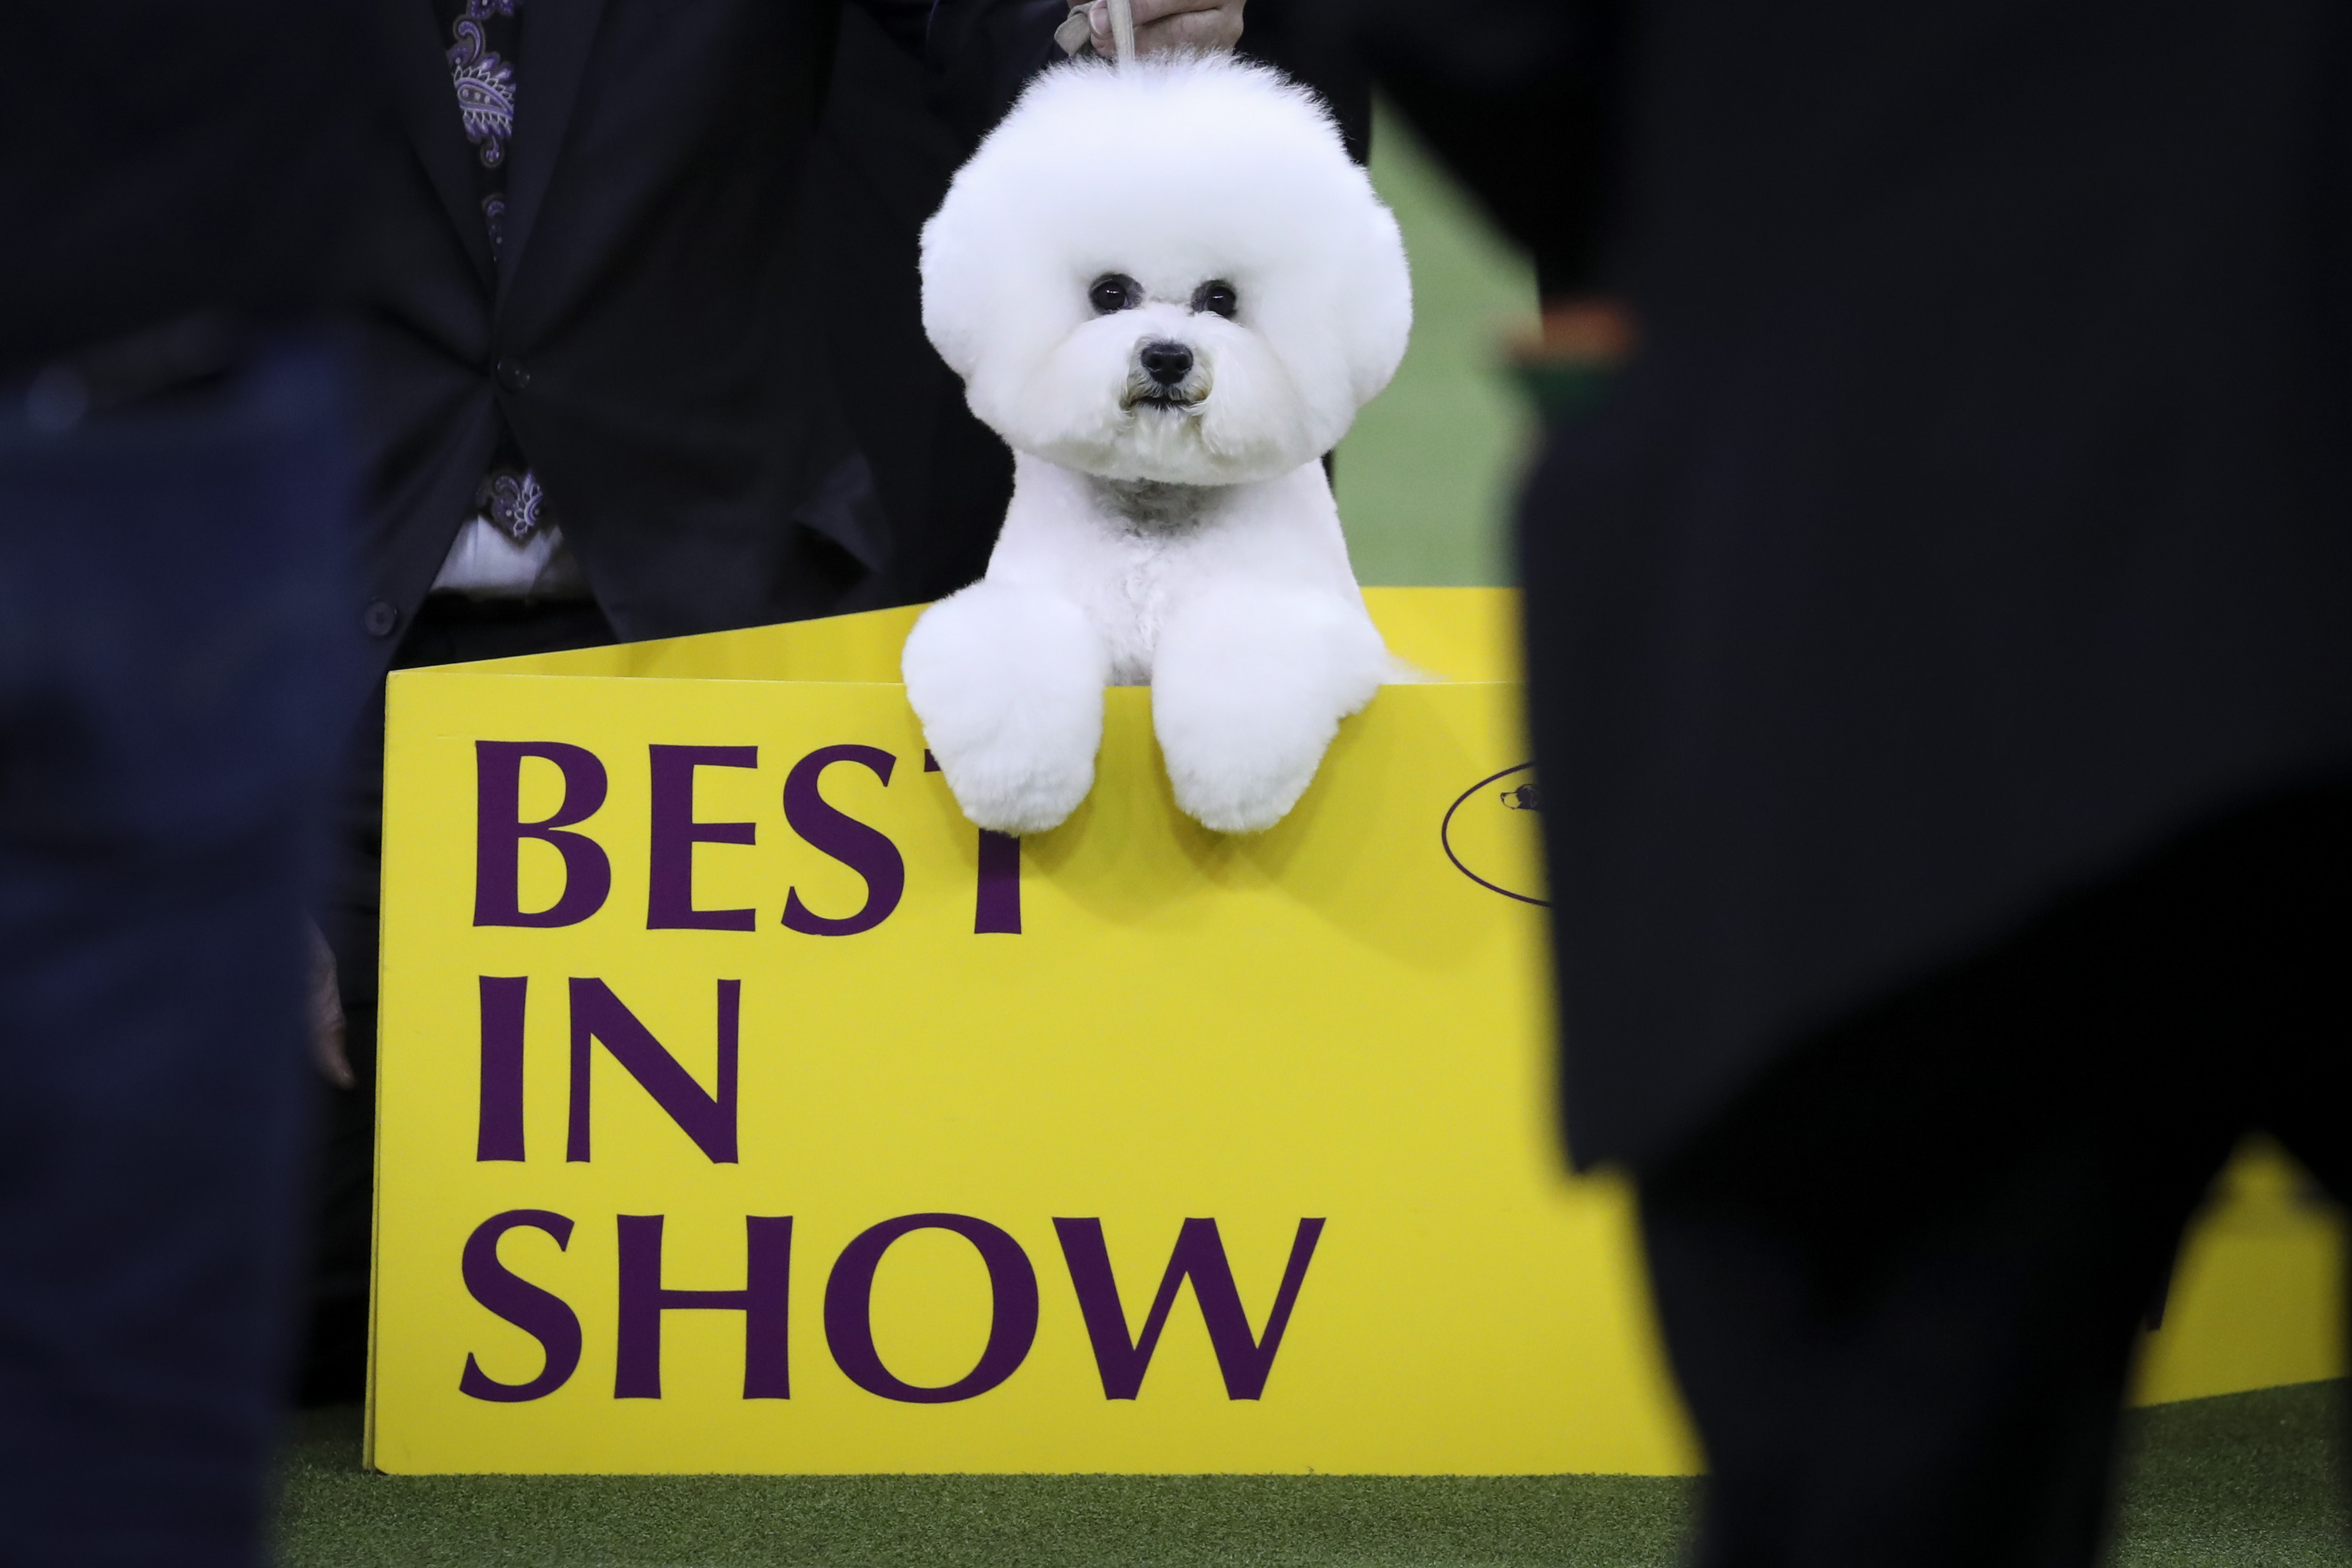 National Dog Show Best In Breed